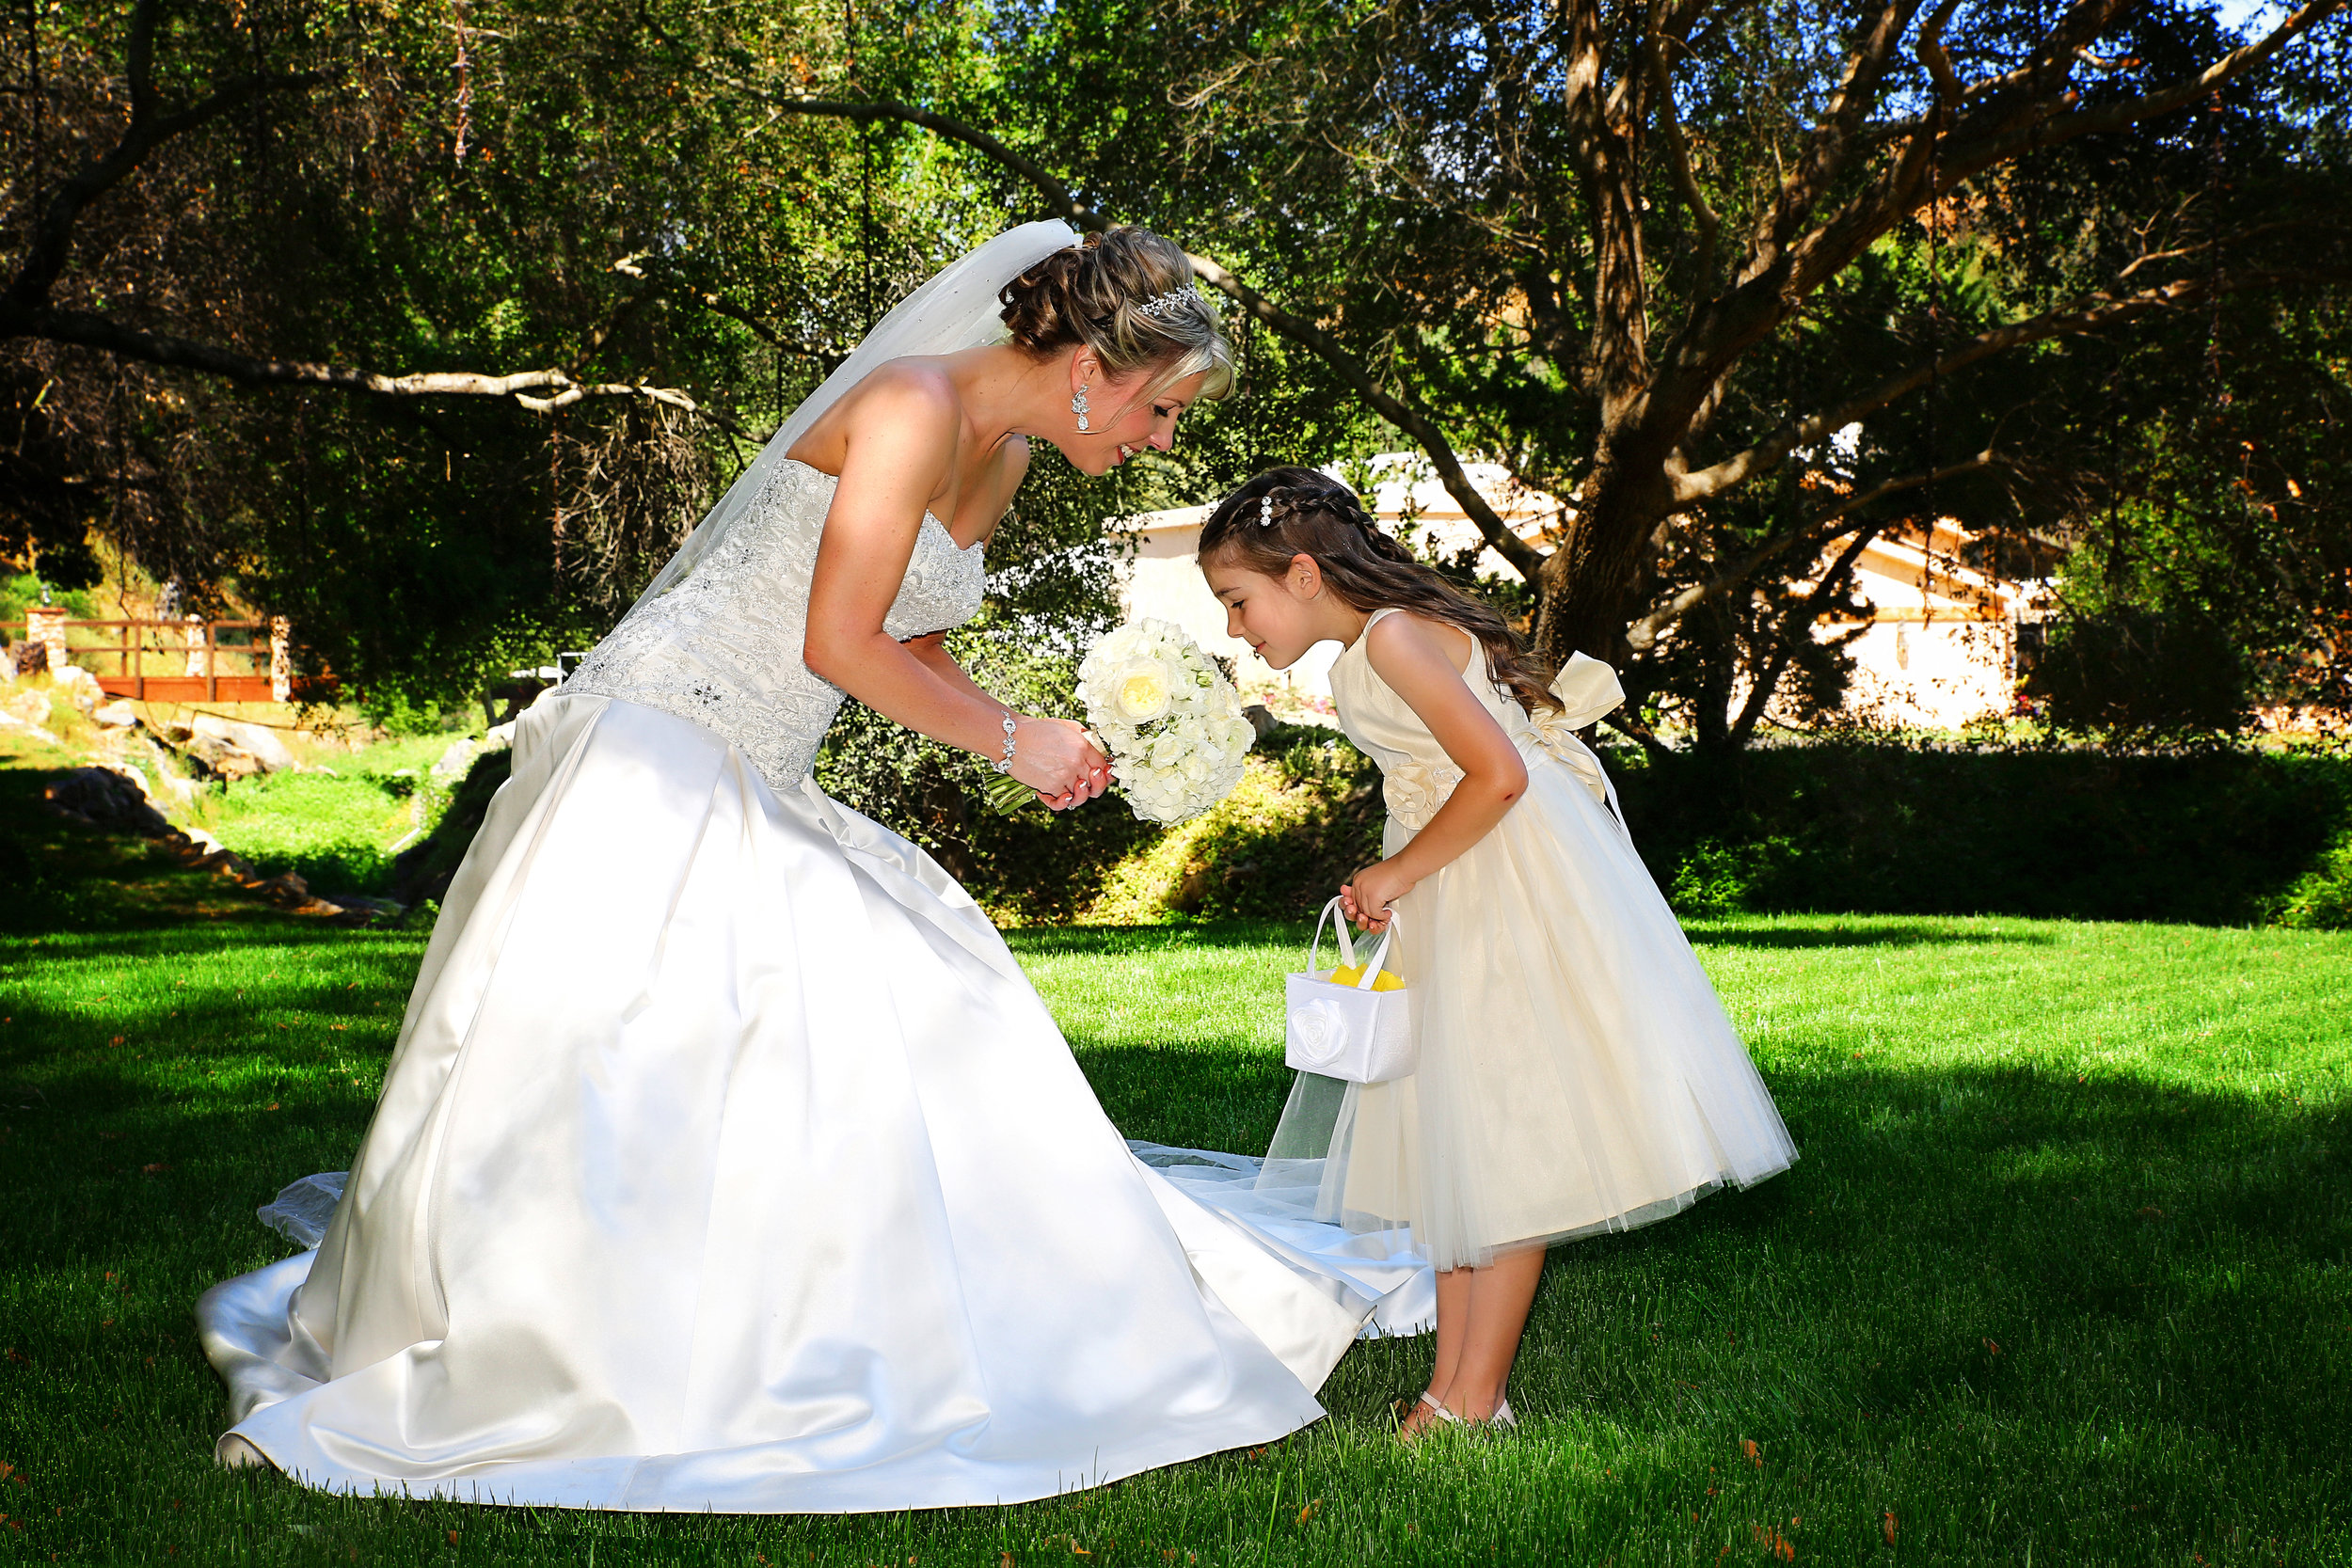 ShadowcatcherGalleryOne_SanDiegoWeddingPhotogrpaher_027.JPG